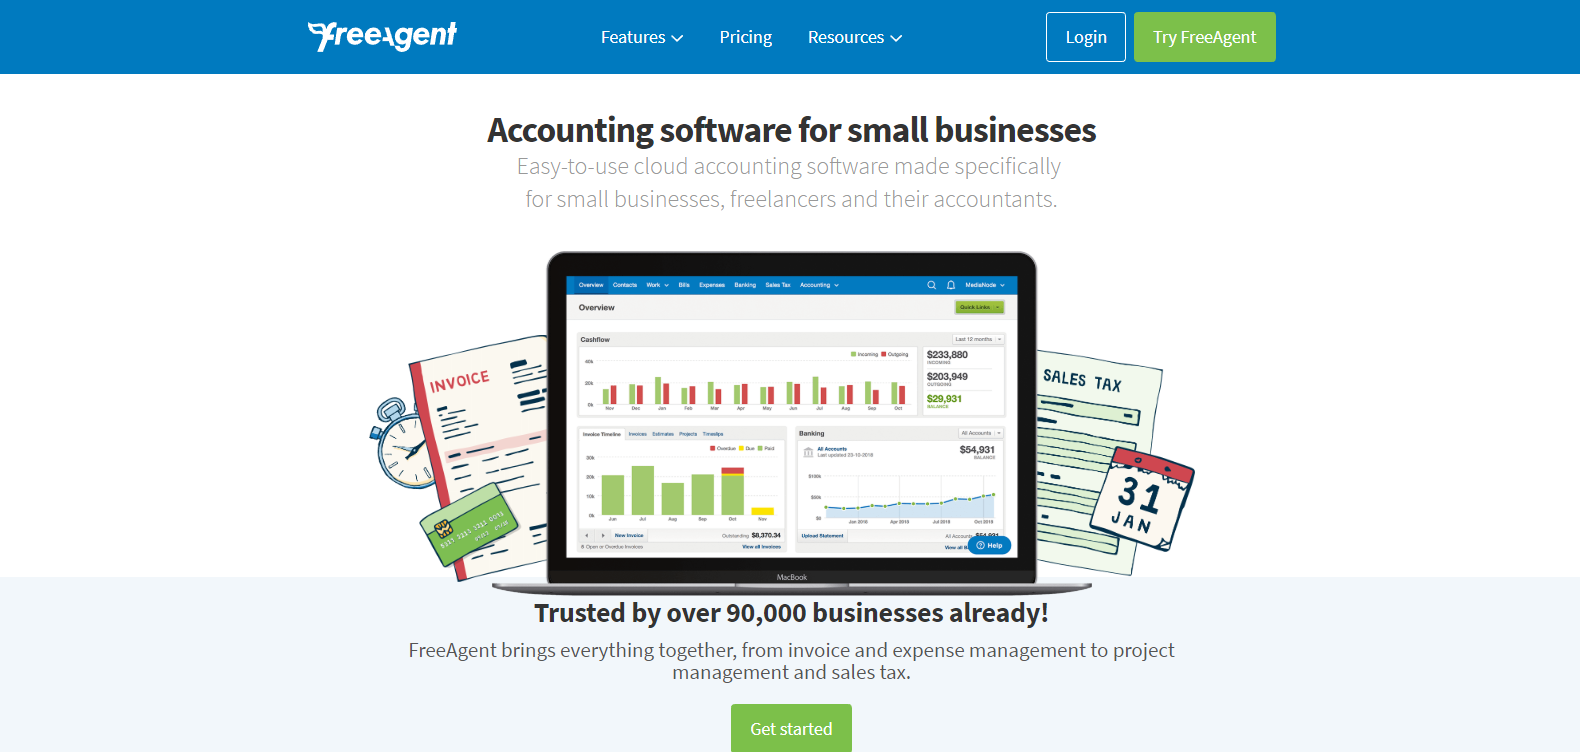 FreeAgent is a QuickBooks alternative.